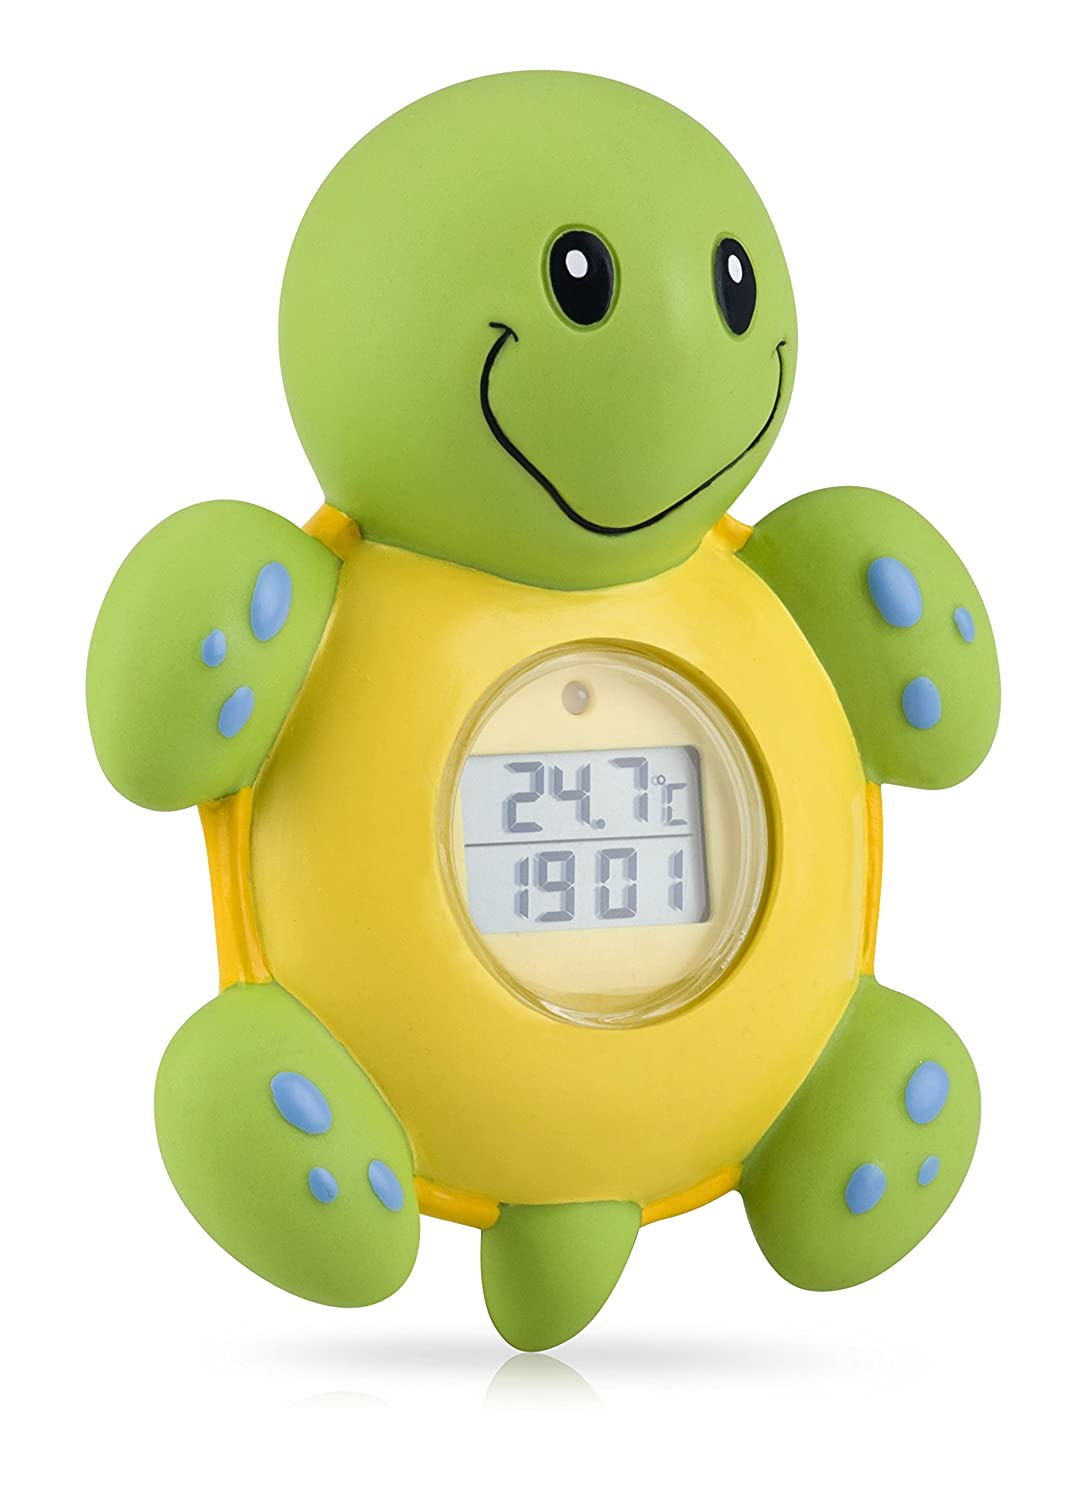 Amazon.com: Nuby Bath Time Clock and Thermometer, Styles May Vary ...